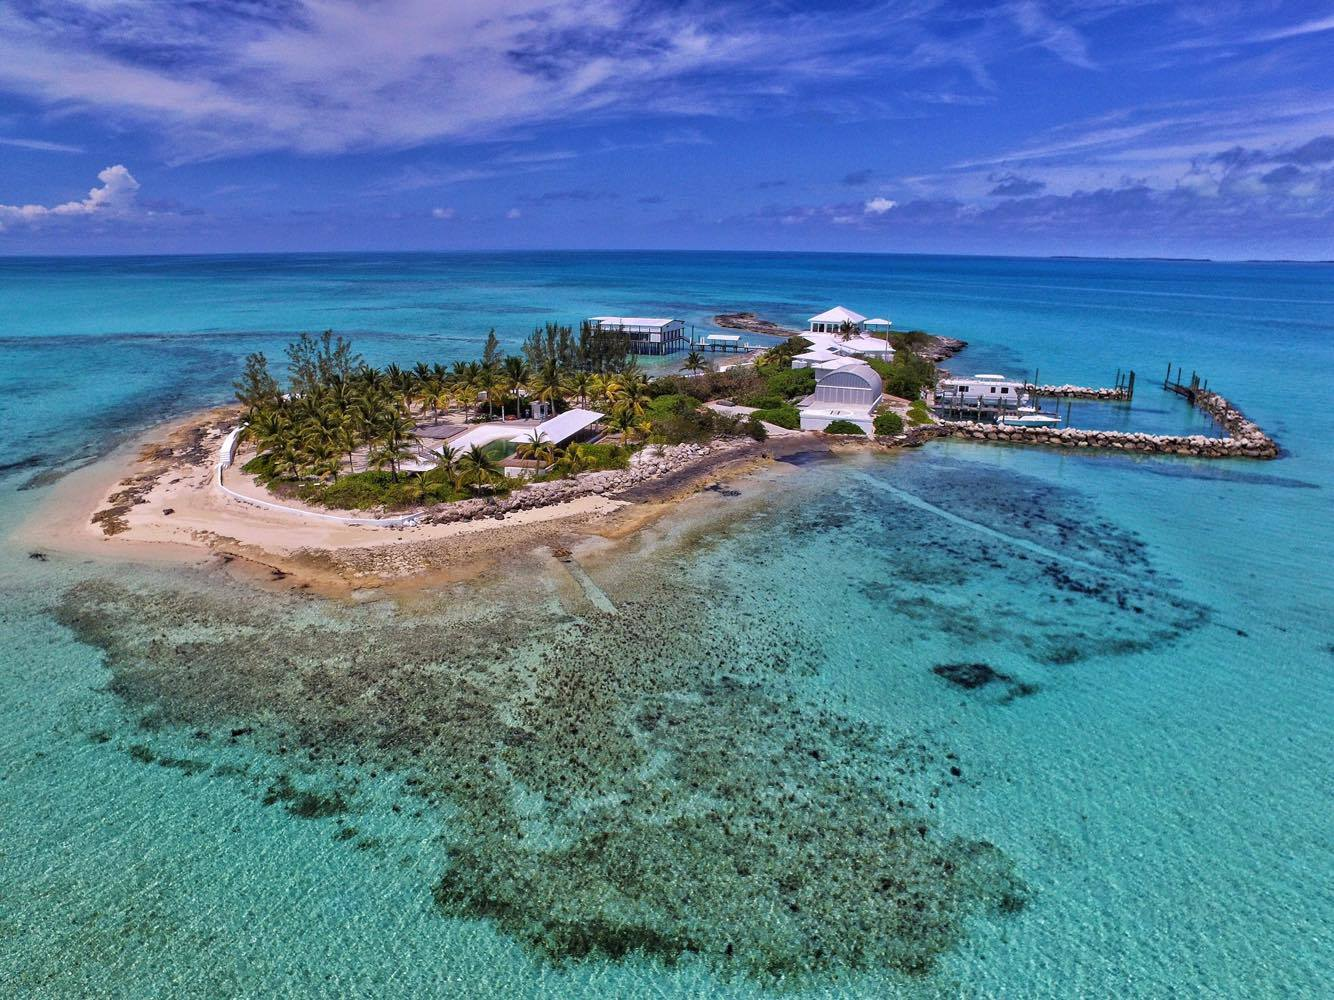 Ilha Privada para Venda às Private Island North Eleuthera - Exclusive - Unique - Exciting Commercial Possibilities! Eleuthera, Bahamas